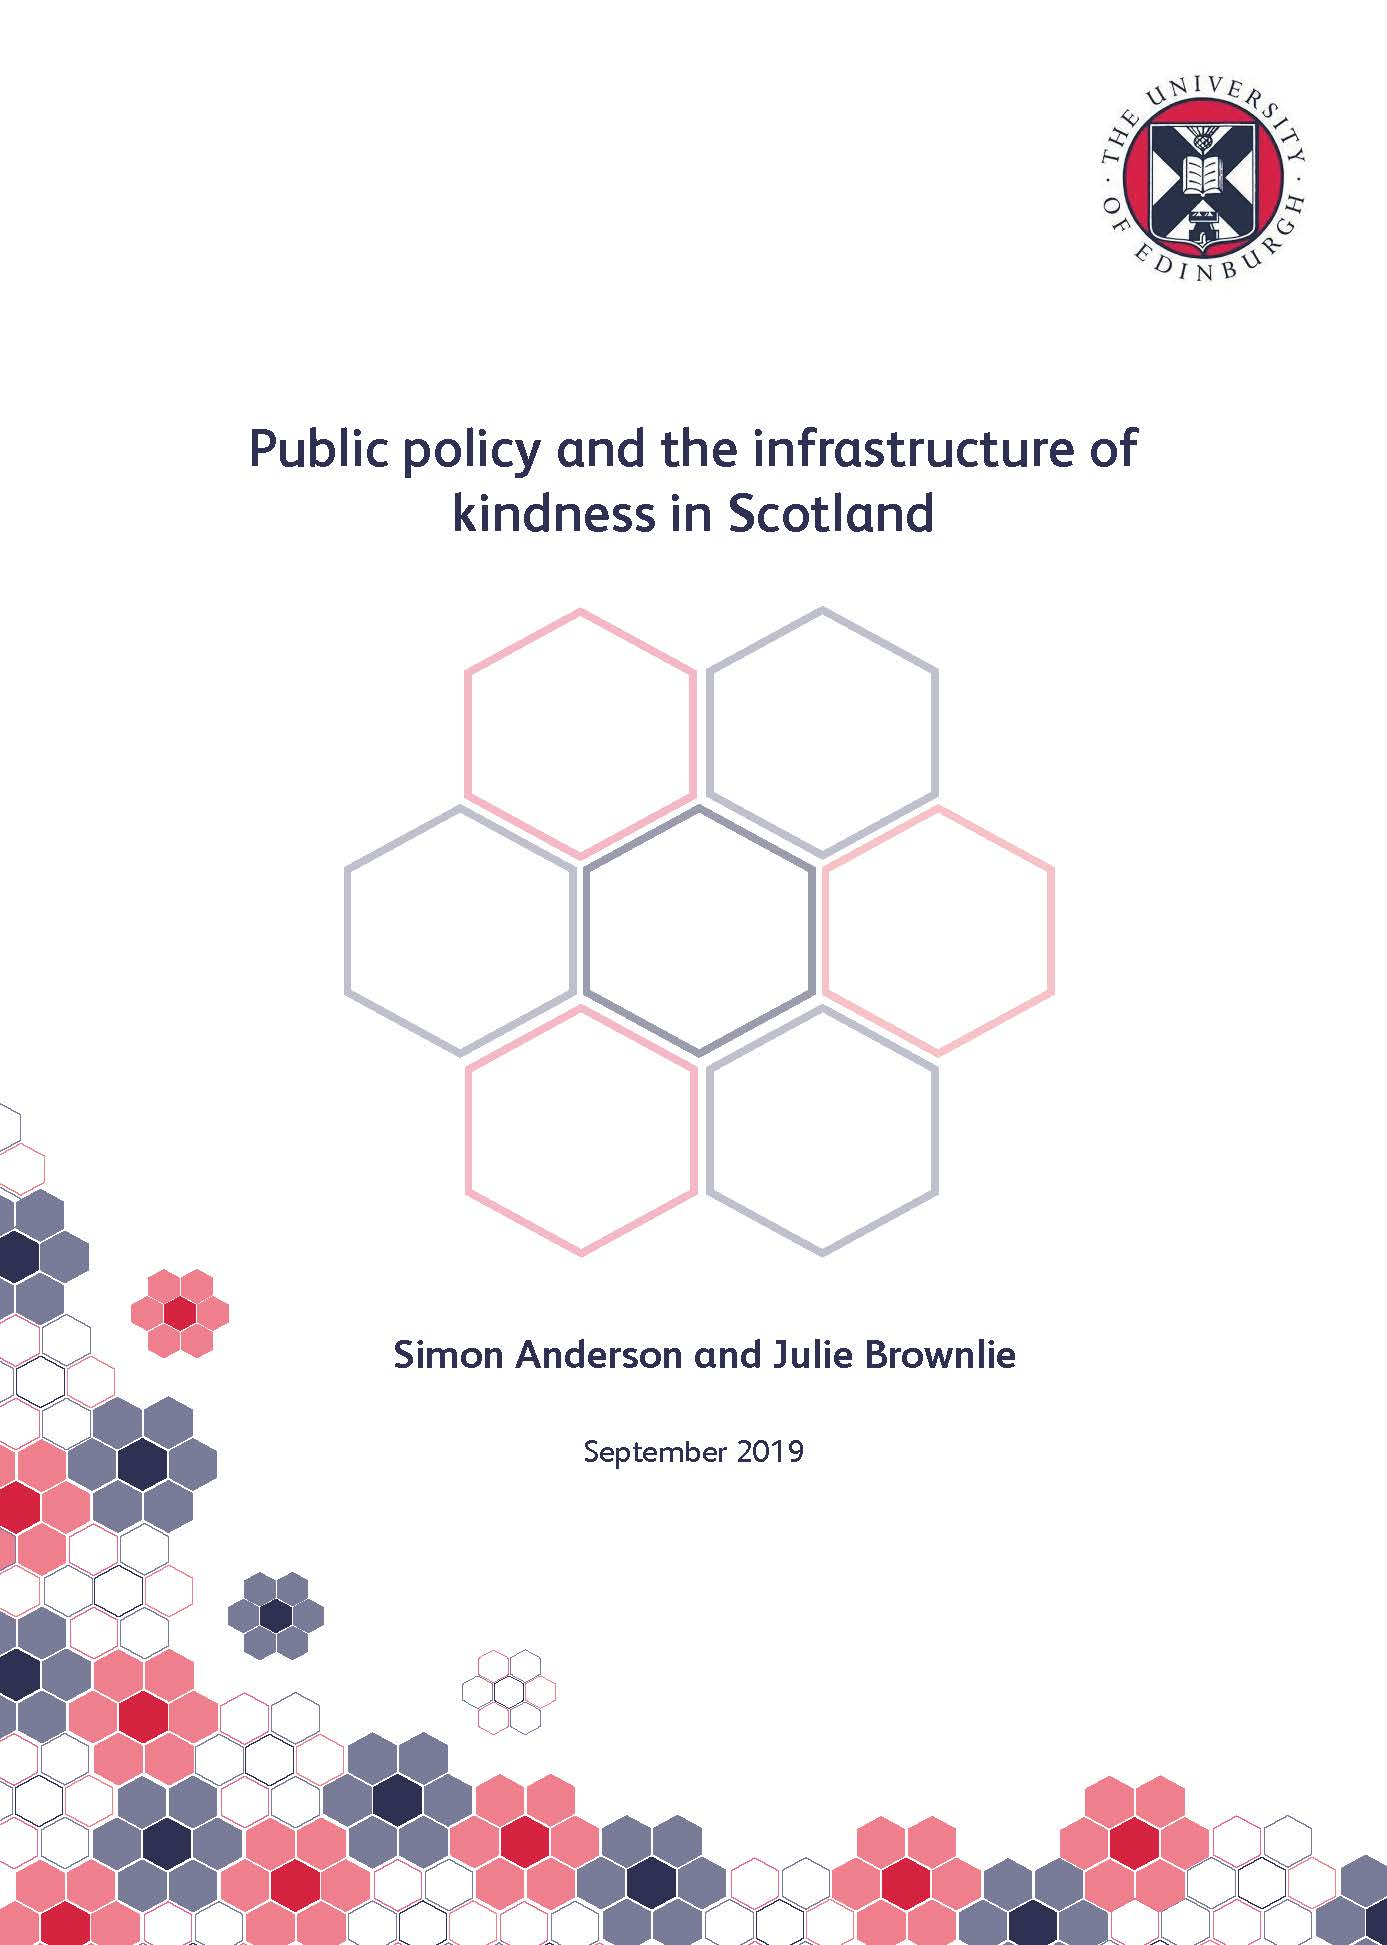 Public policy and the infrastructure of kindness in Scotland